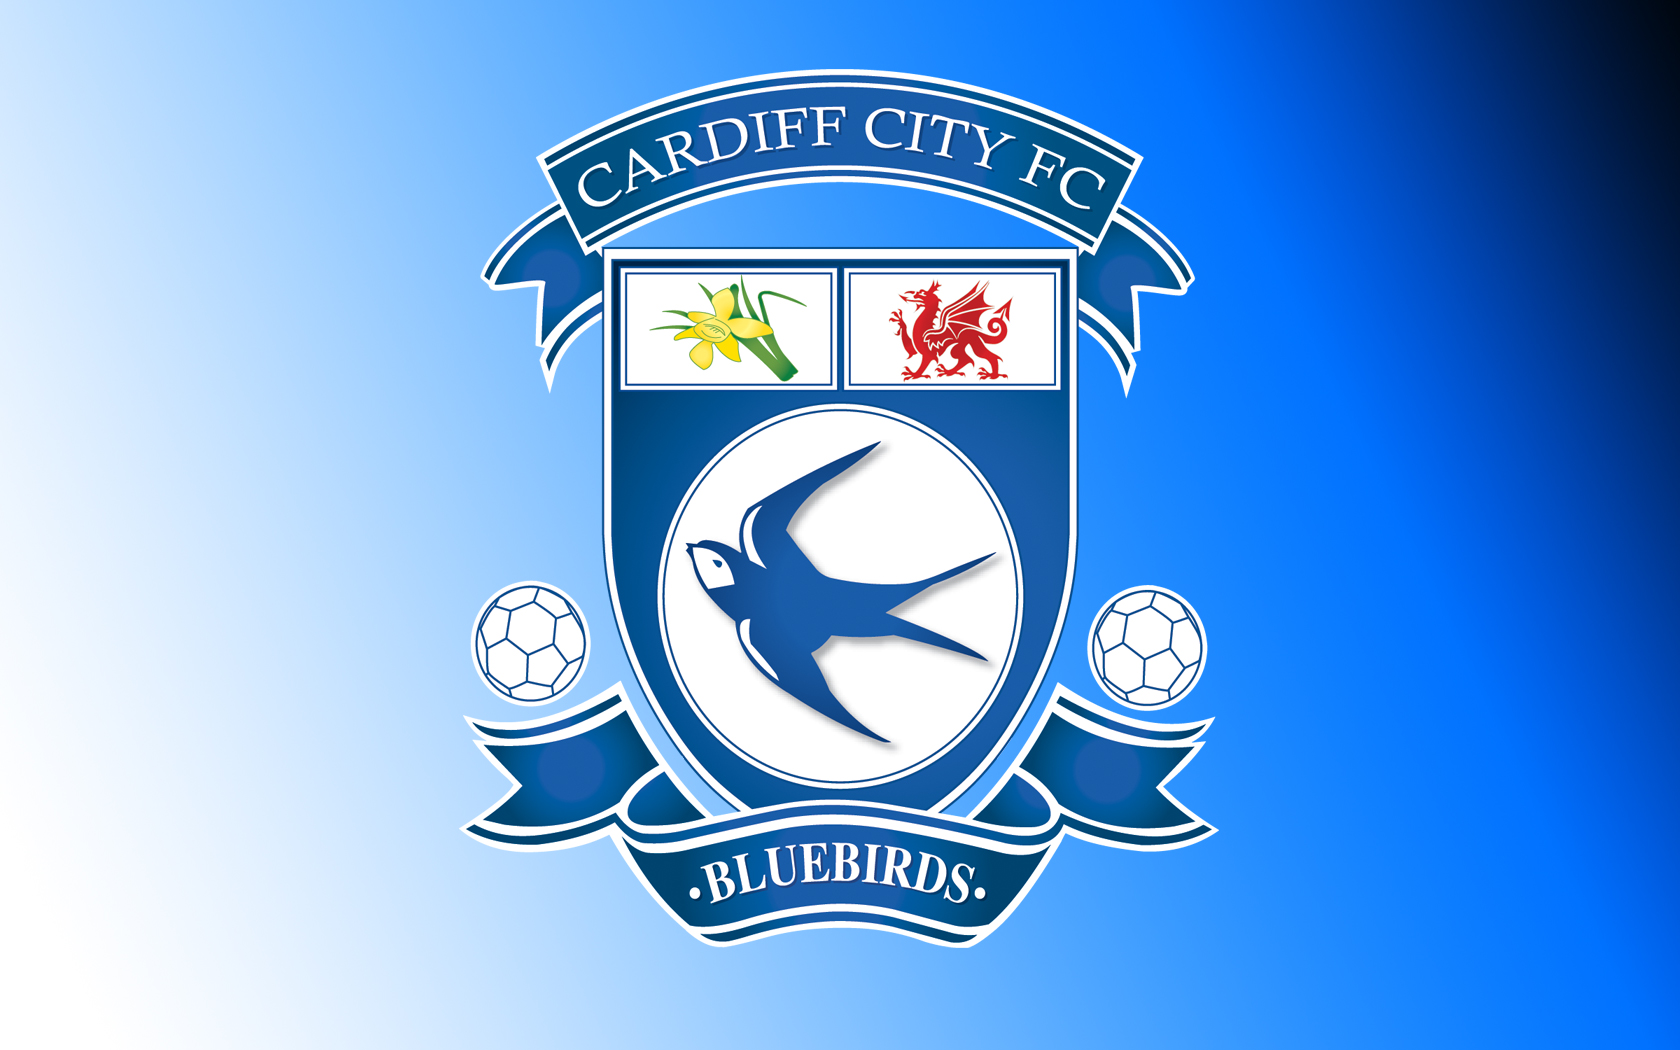 Cardiff City Football Wallpaper, Backgrounds and Picture.